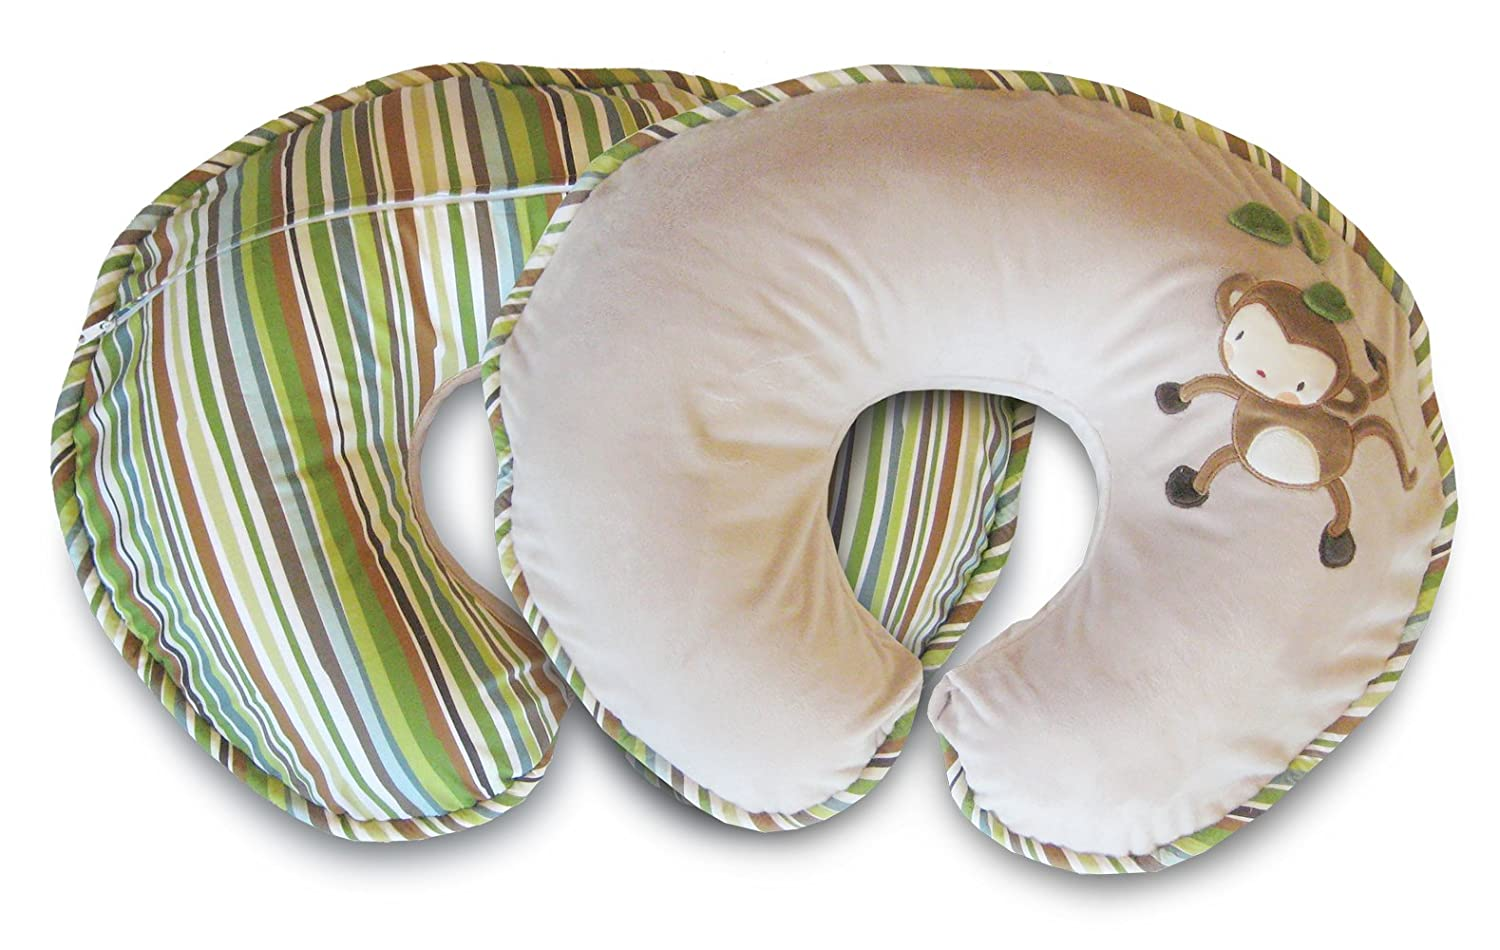 Boppy Pillow with Luxe Slipcover. Click for more must-haves for 1st time parents!